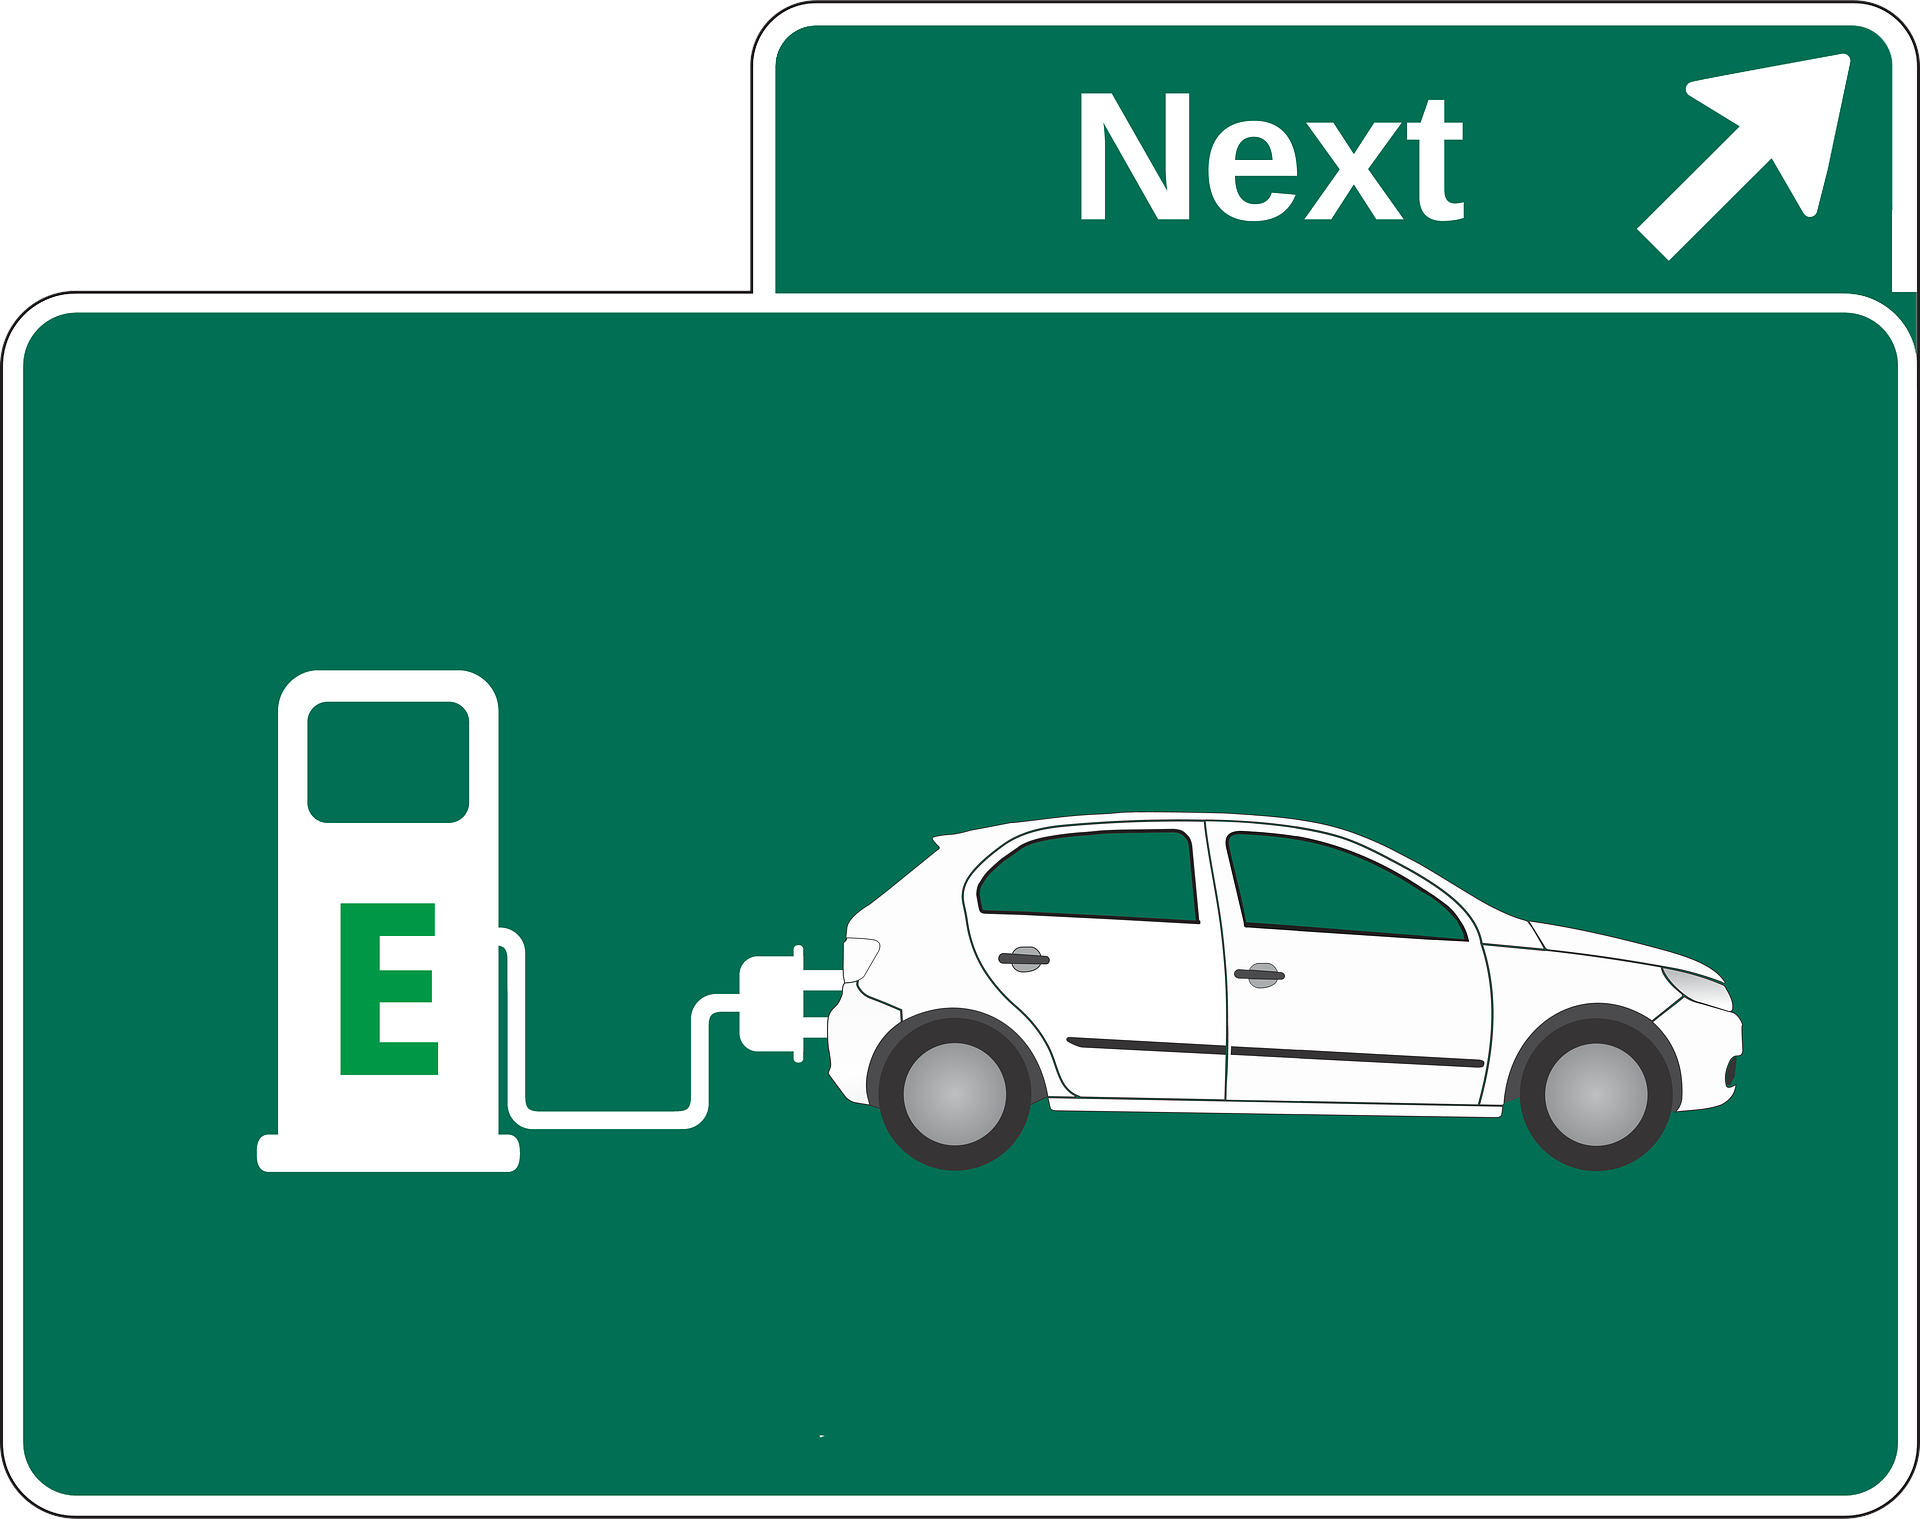 electric-car-sign.png